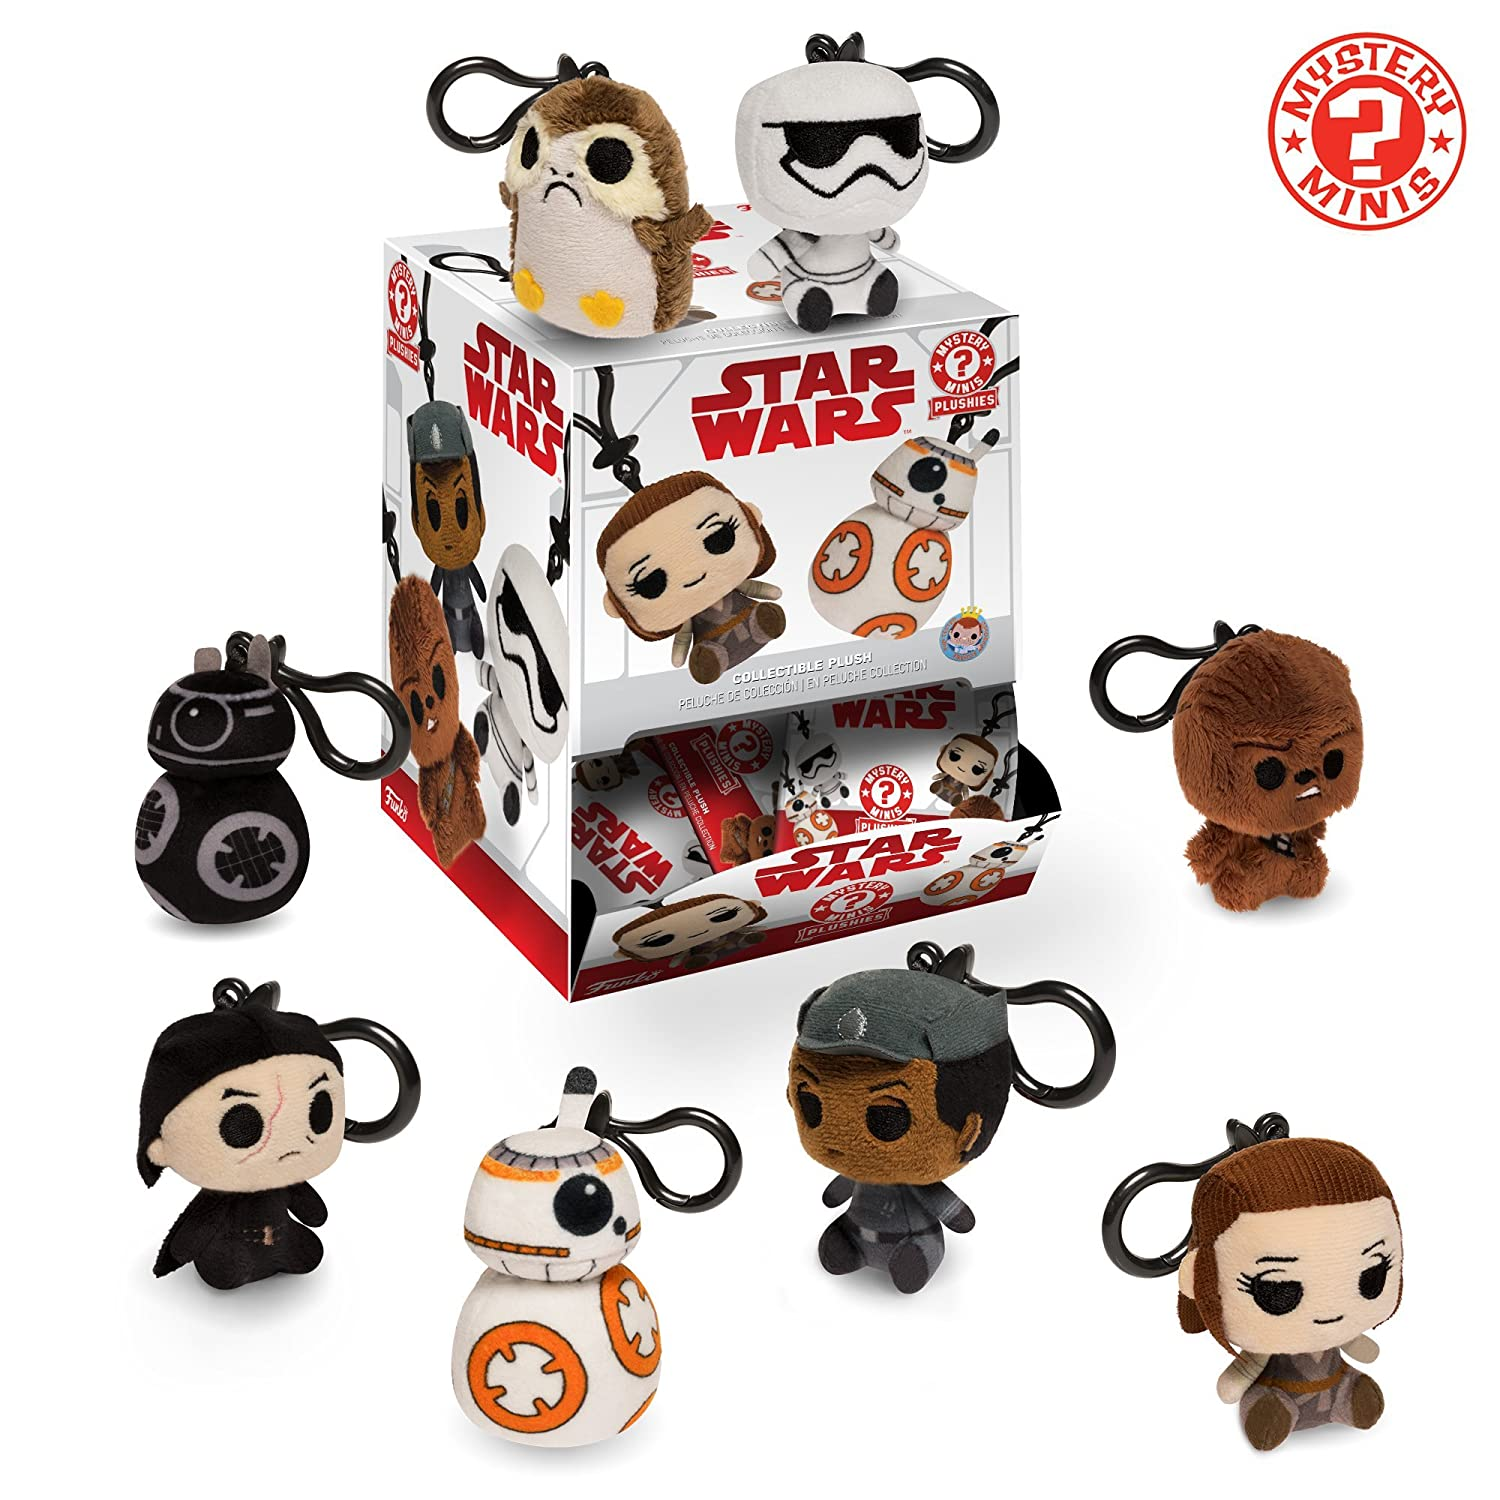 Amazon.com: Funko Blind Bag Keychain Plush: Star Wars the Last Jedi Collectible Figure, Multicolor: Funko Plush Keychains:: Toys & Games